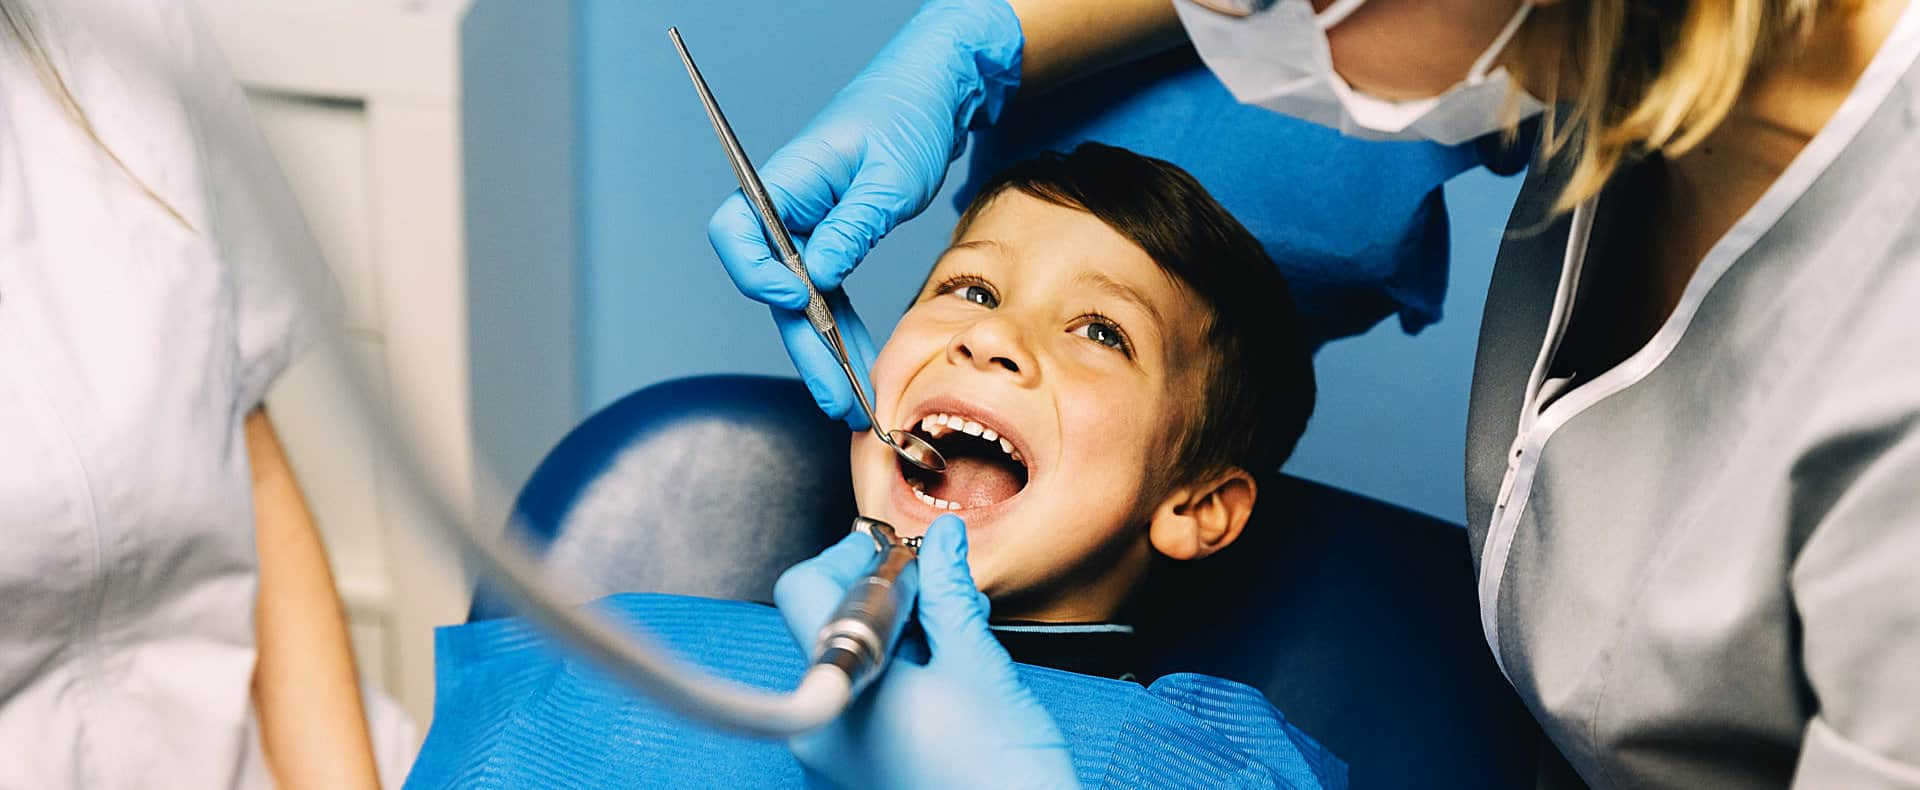 dentists checking the kid's teeth